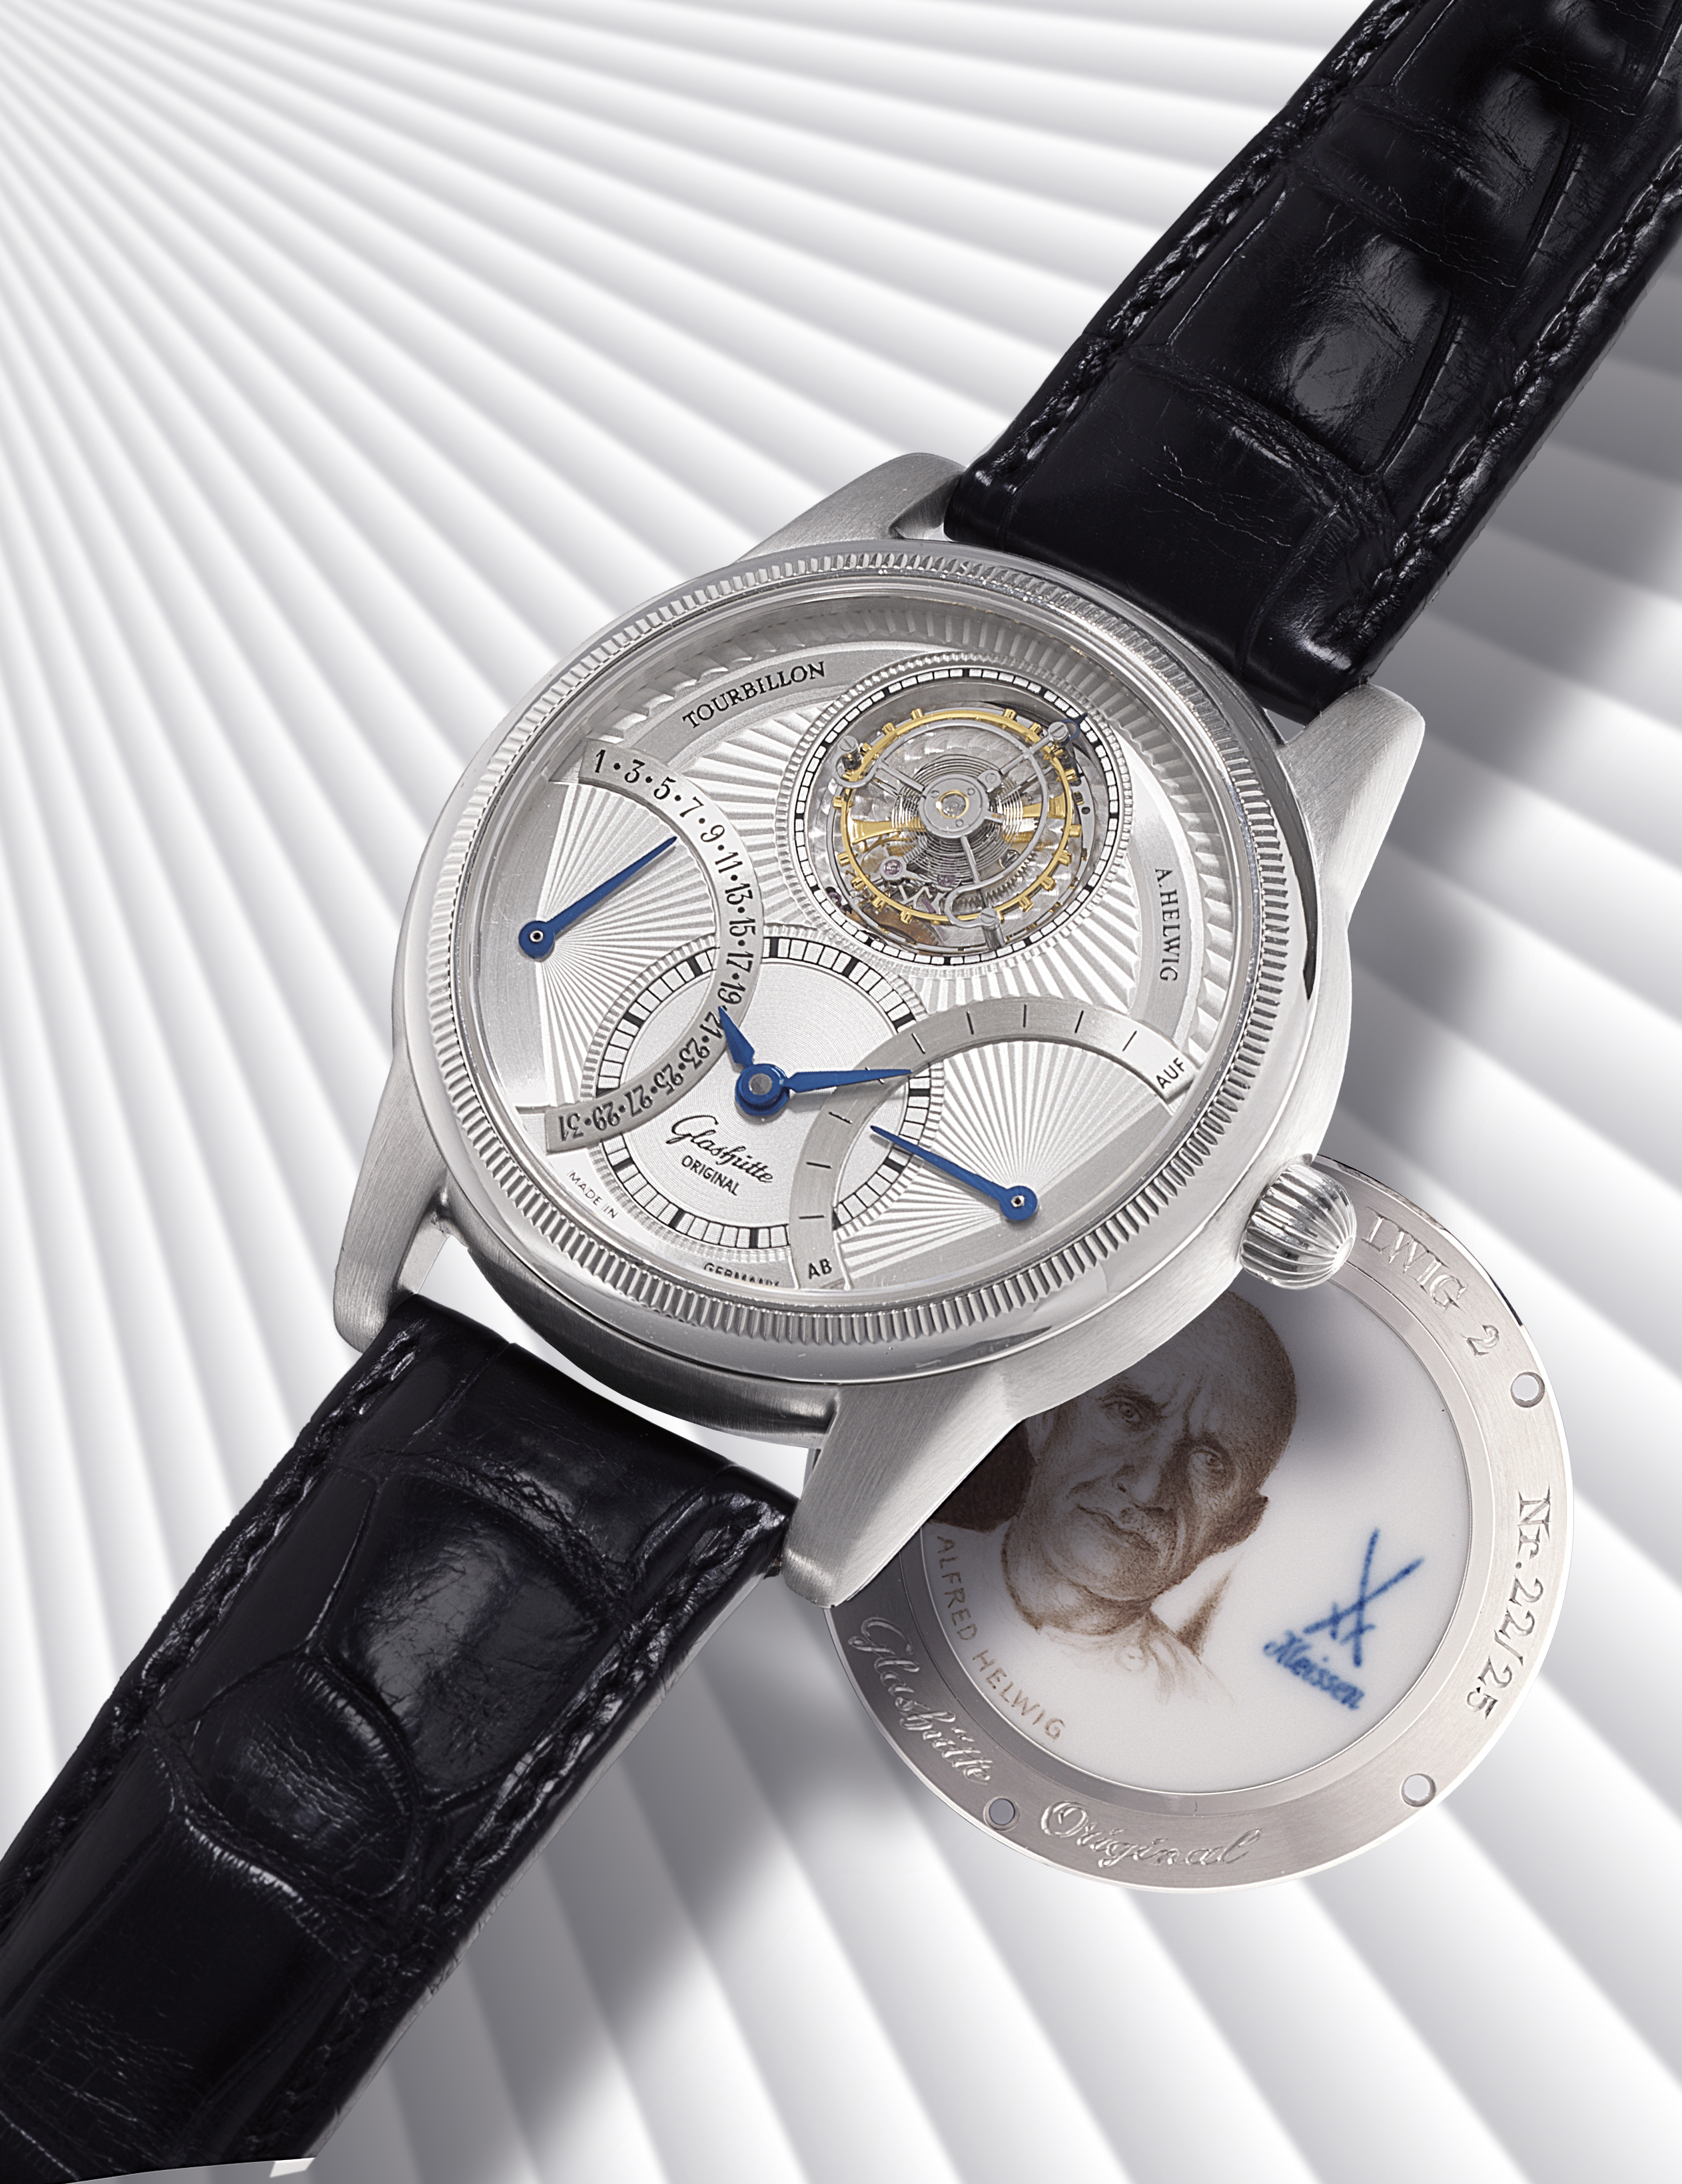 GLASHÜTTE ORIGINAL, TOURBILLON ALFRED HELWIG 2  PLATINUM MANUALLY-WOUND FLYING TOURBILLON WRISTWATCH WITH RETROGRADE DATE AND POWER RESERVE INDICATION, LIMITED EDITION OF 25